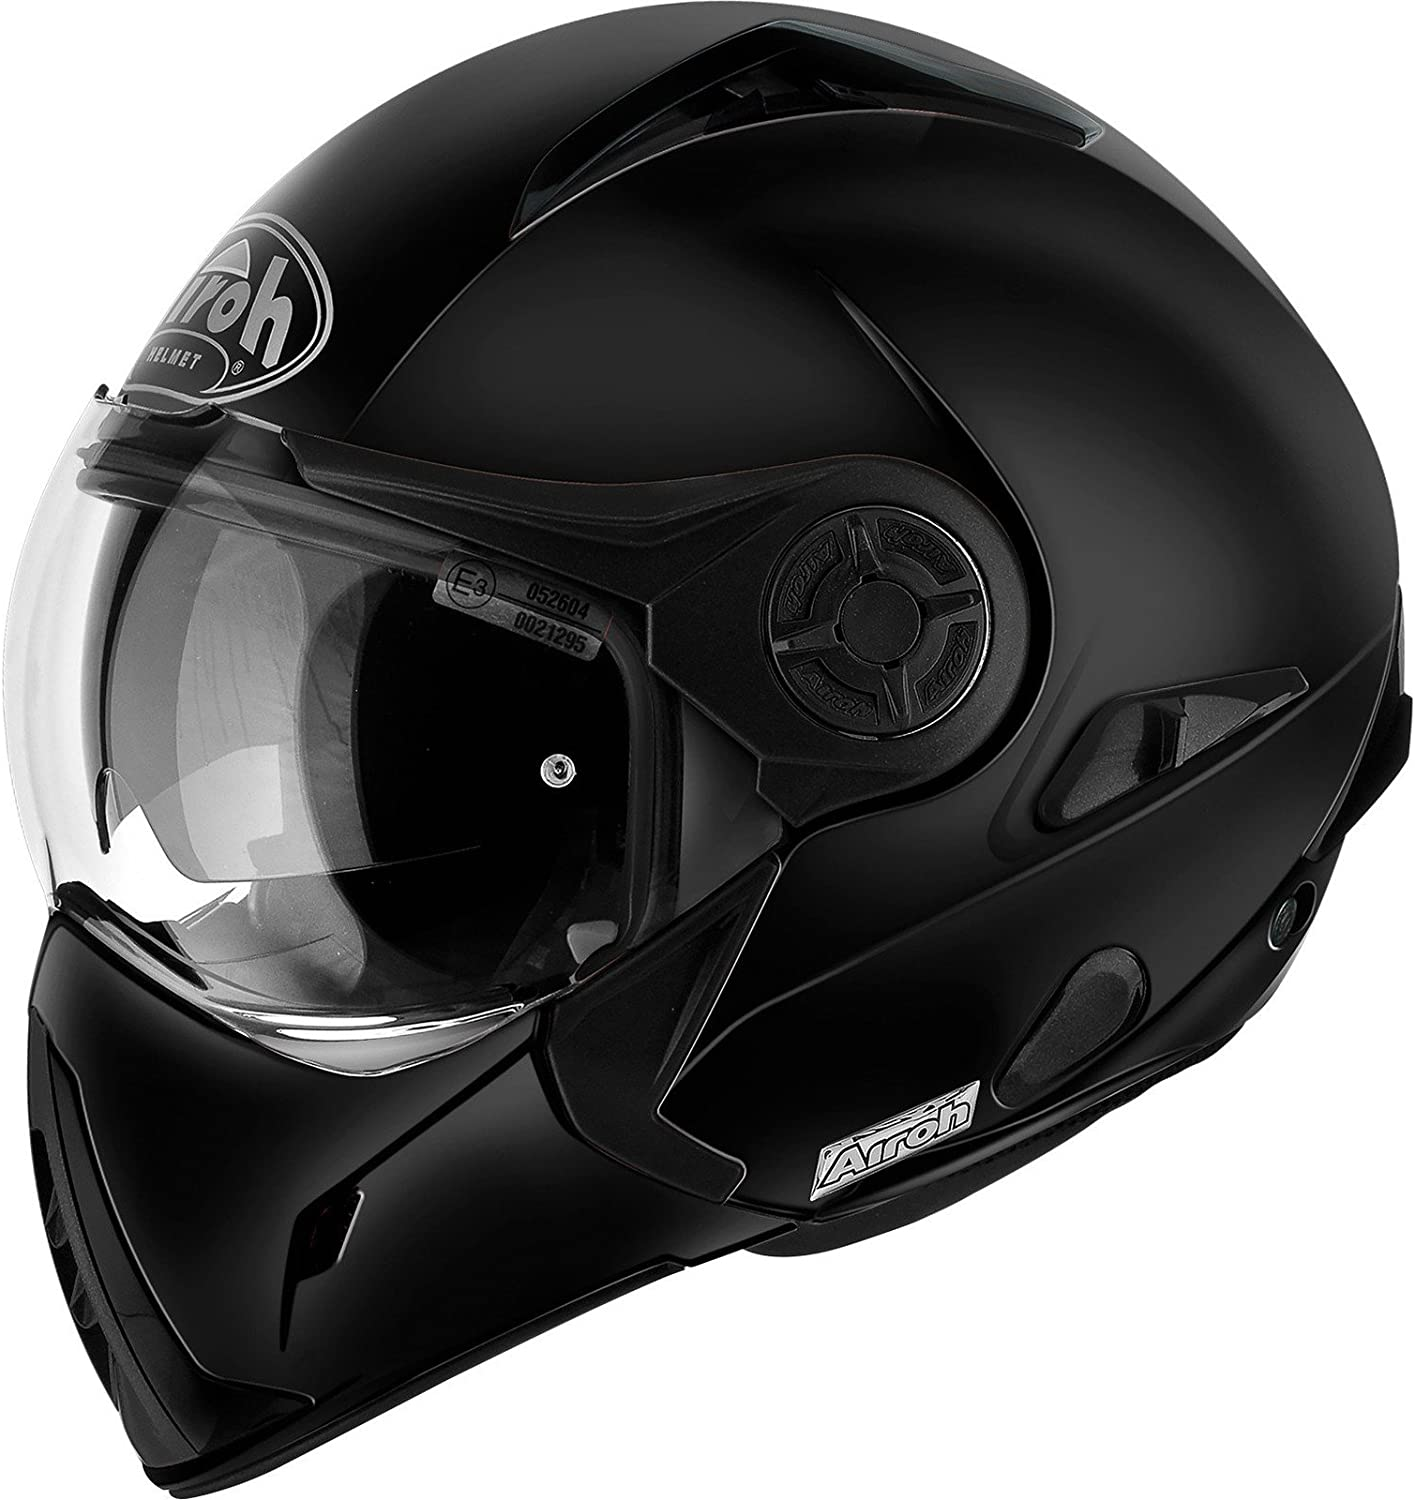 Airoh Moto Casco J106, color Negro mate, talla 56-S